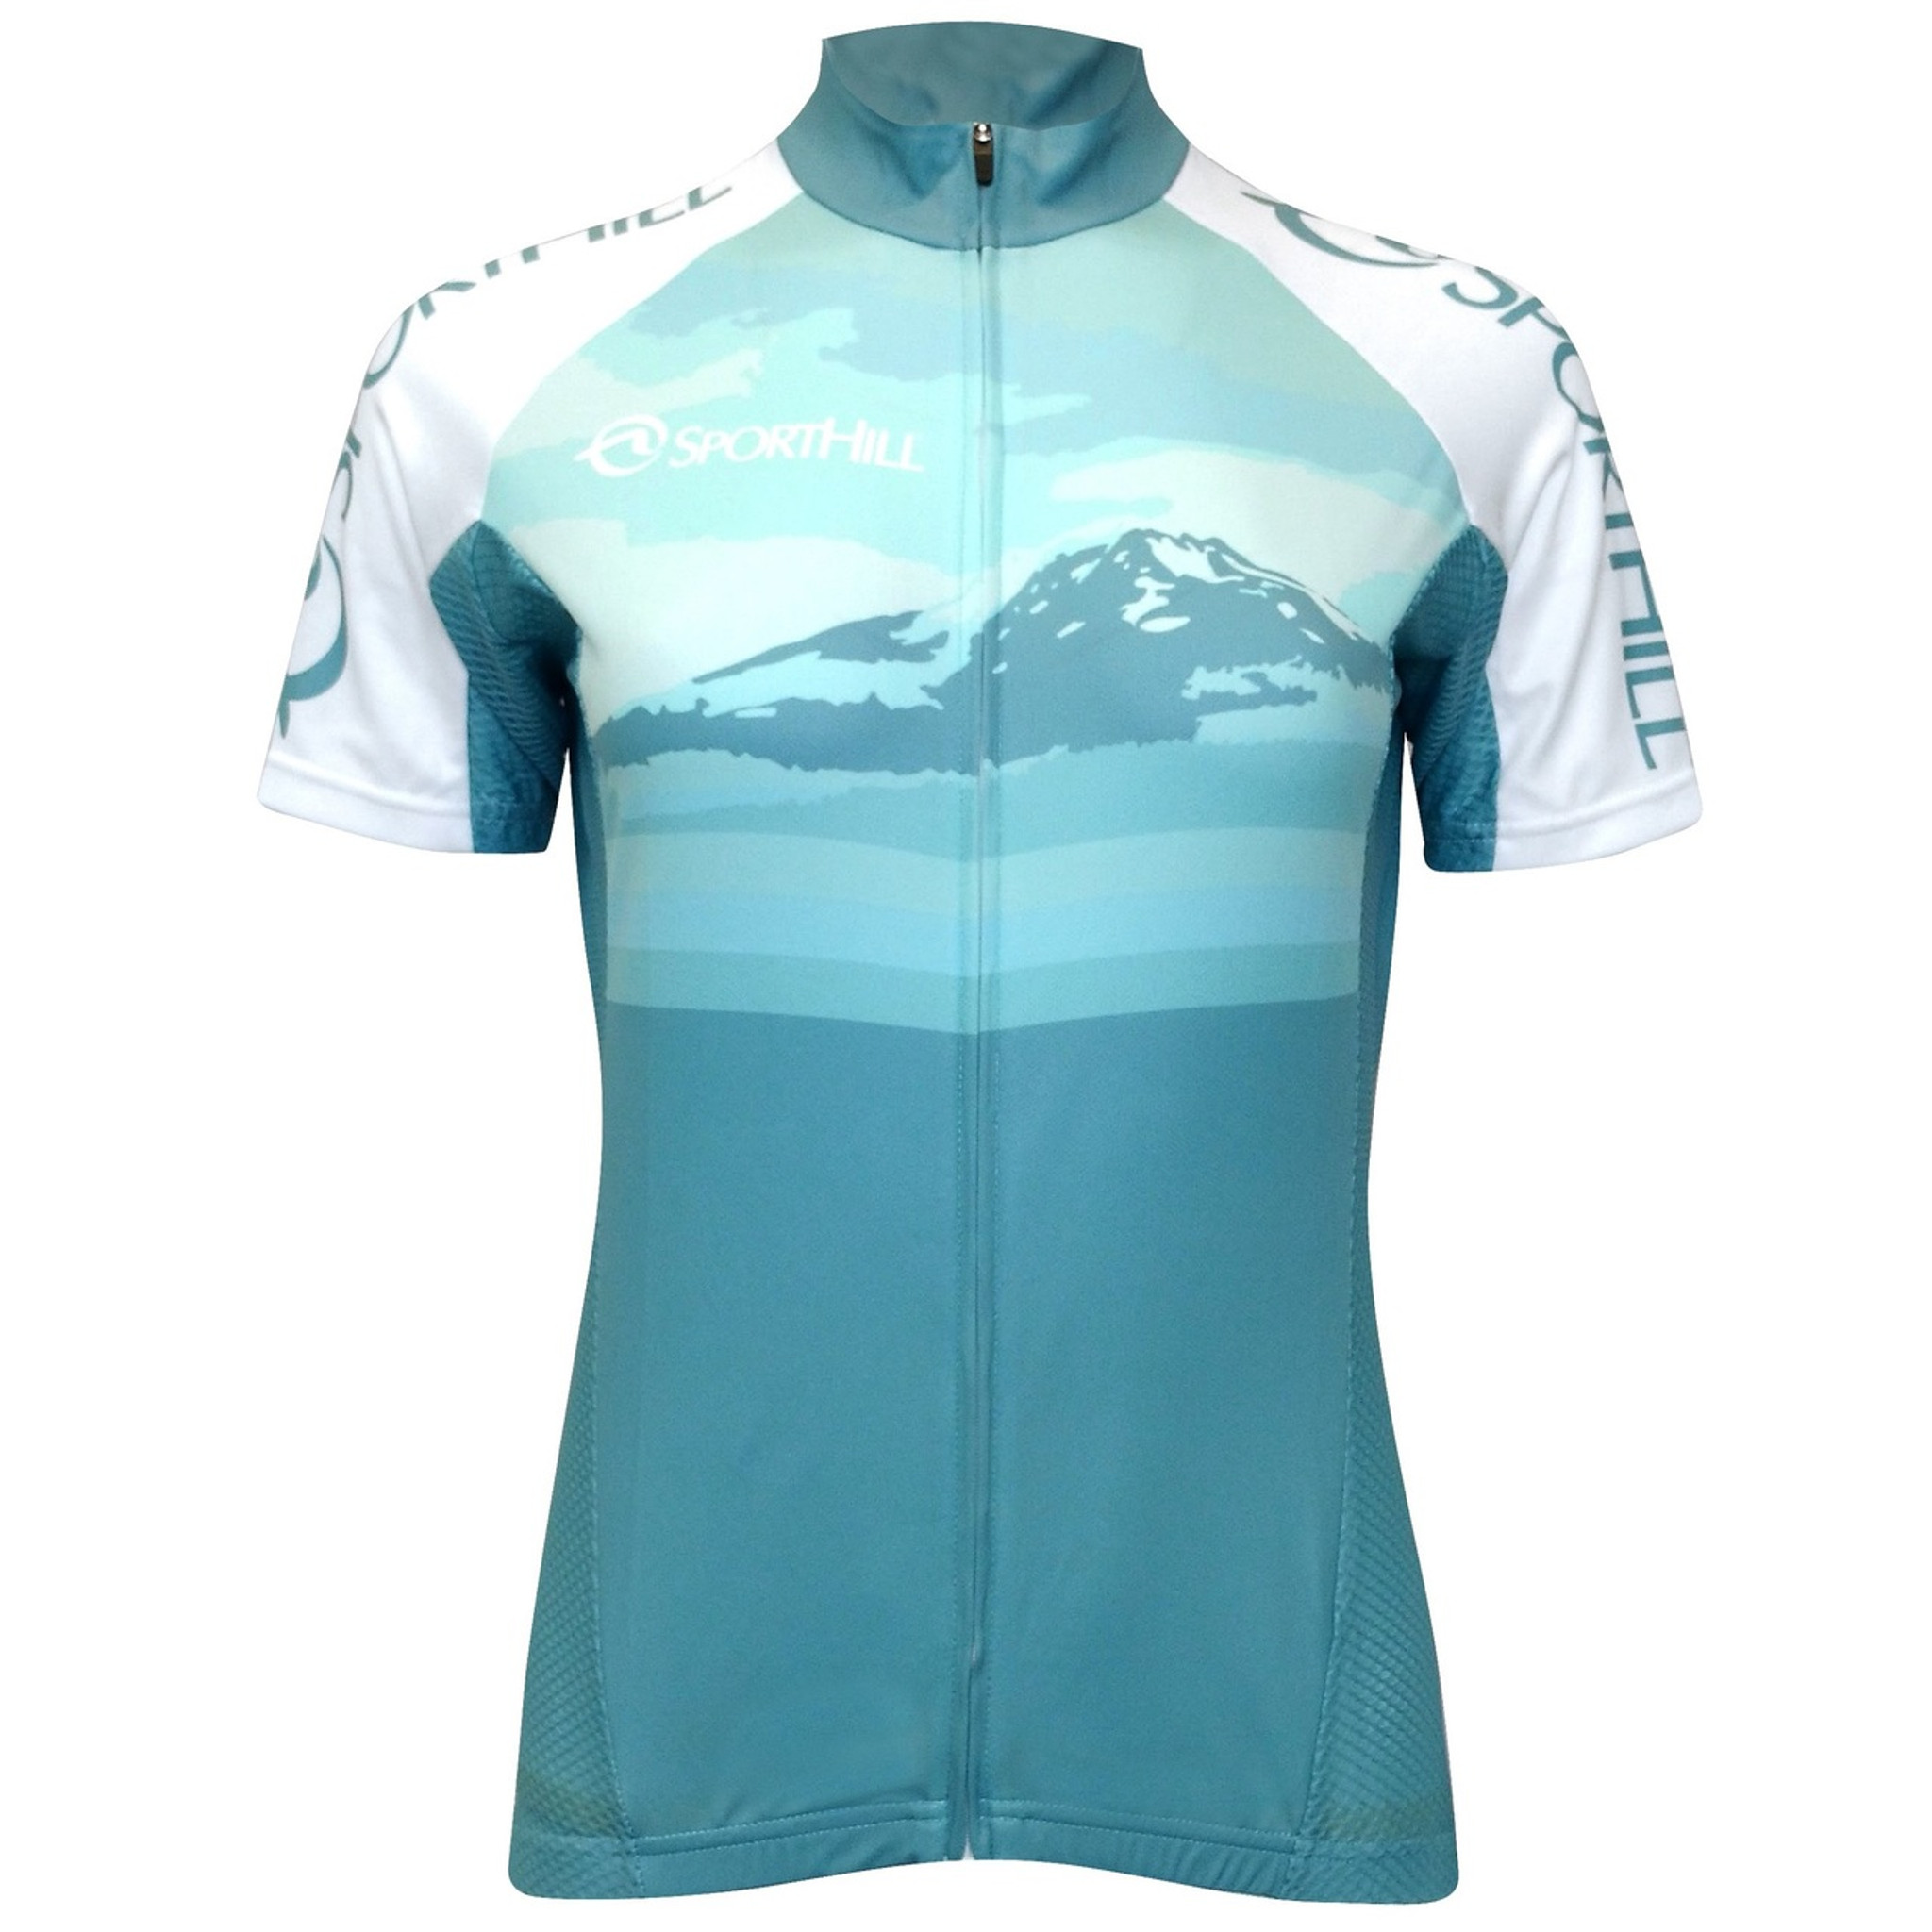 83c4435cc Women s SportHill Cycling Jersey - SportHill® Direct – The ...